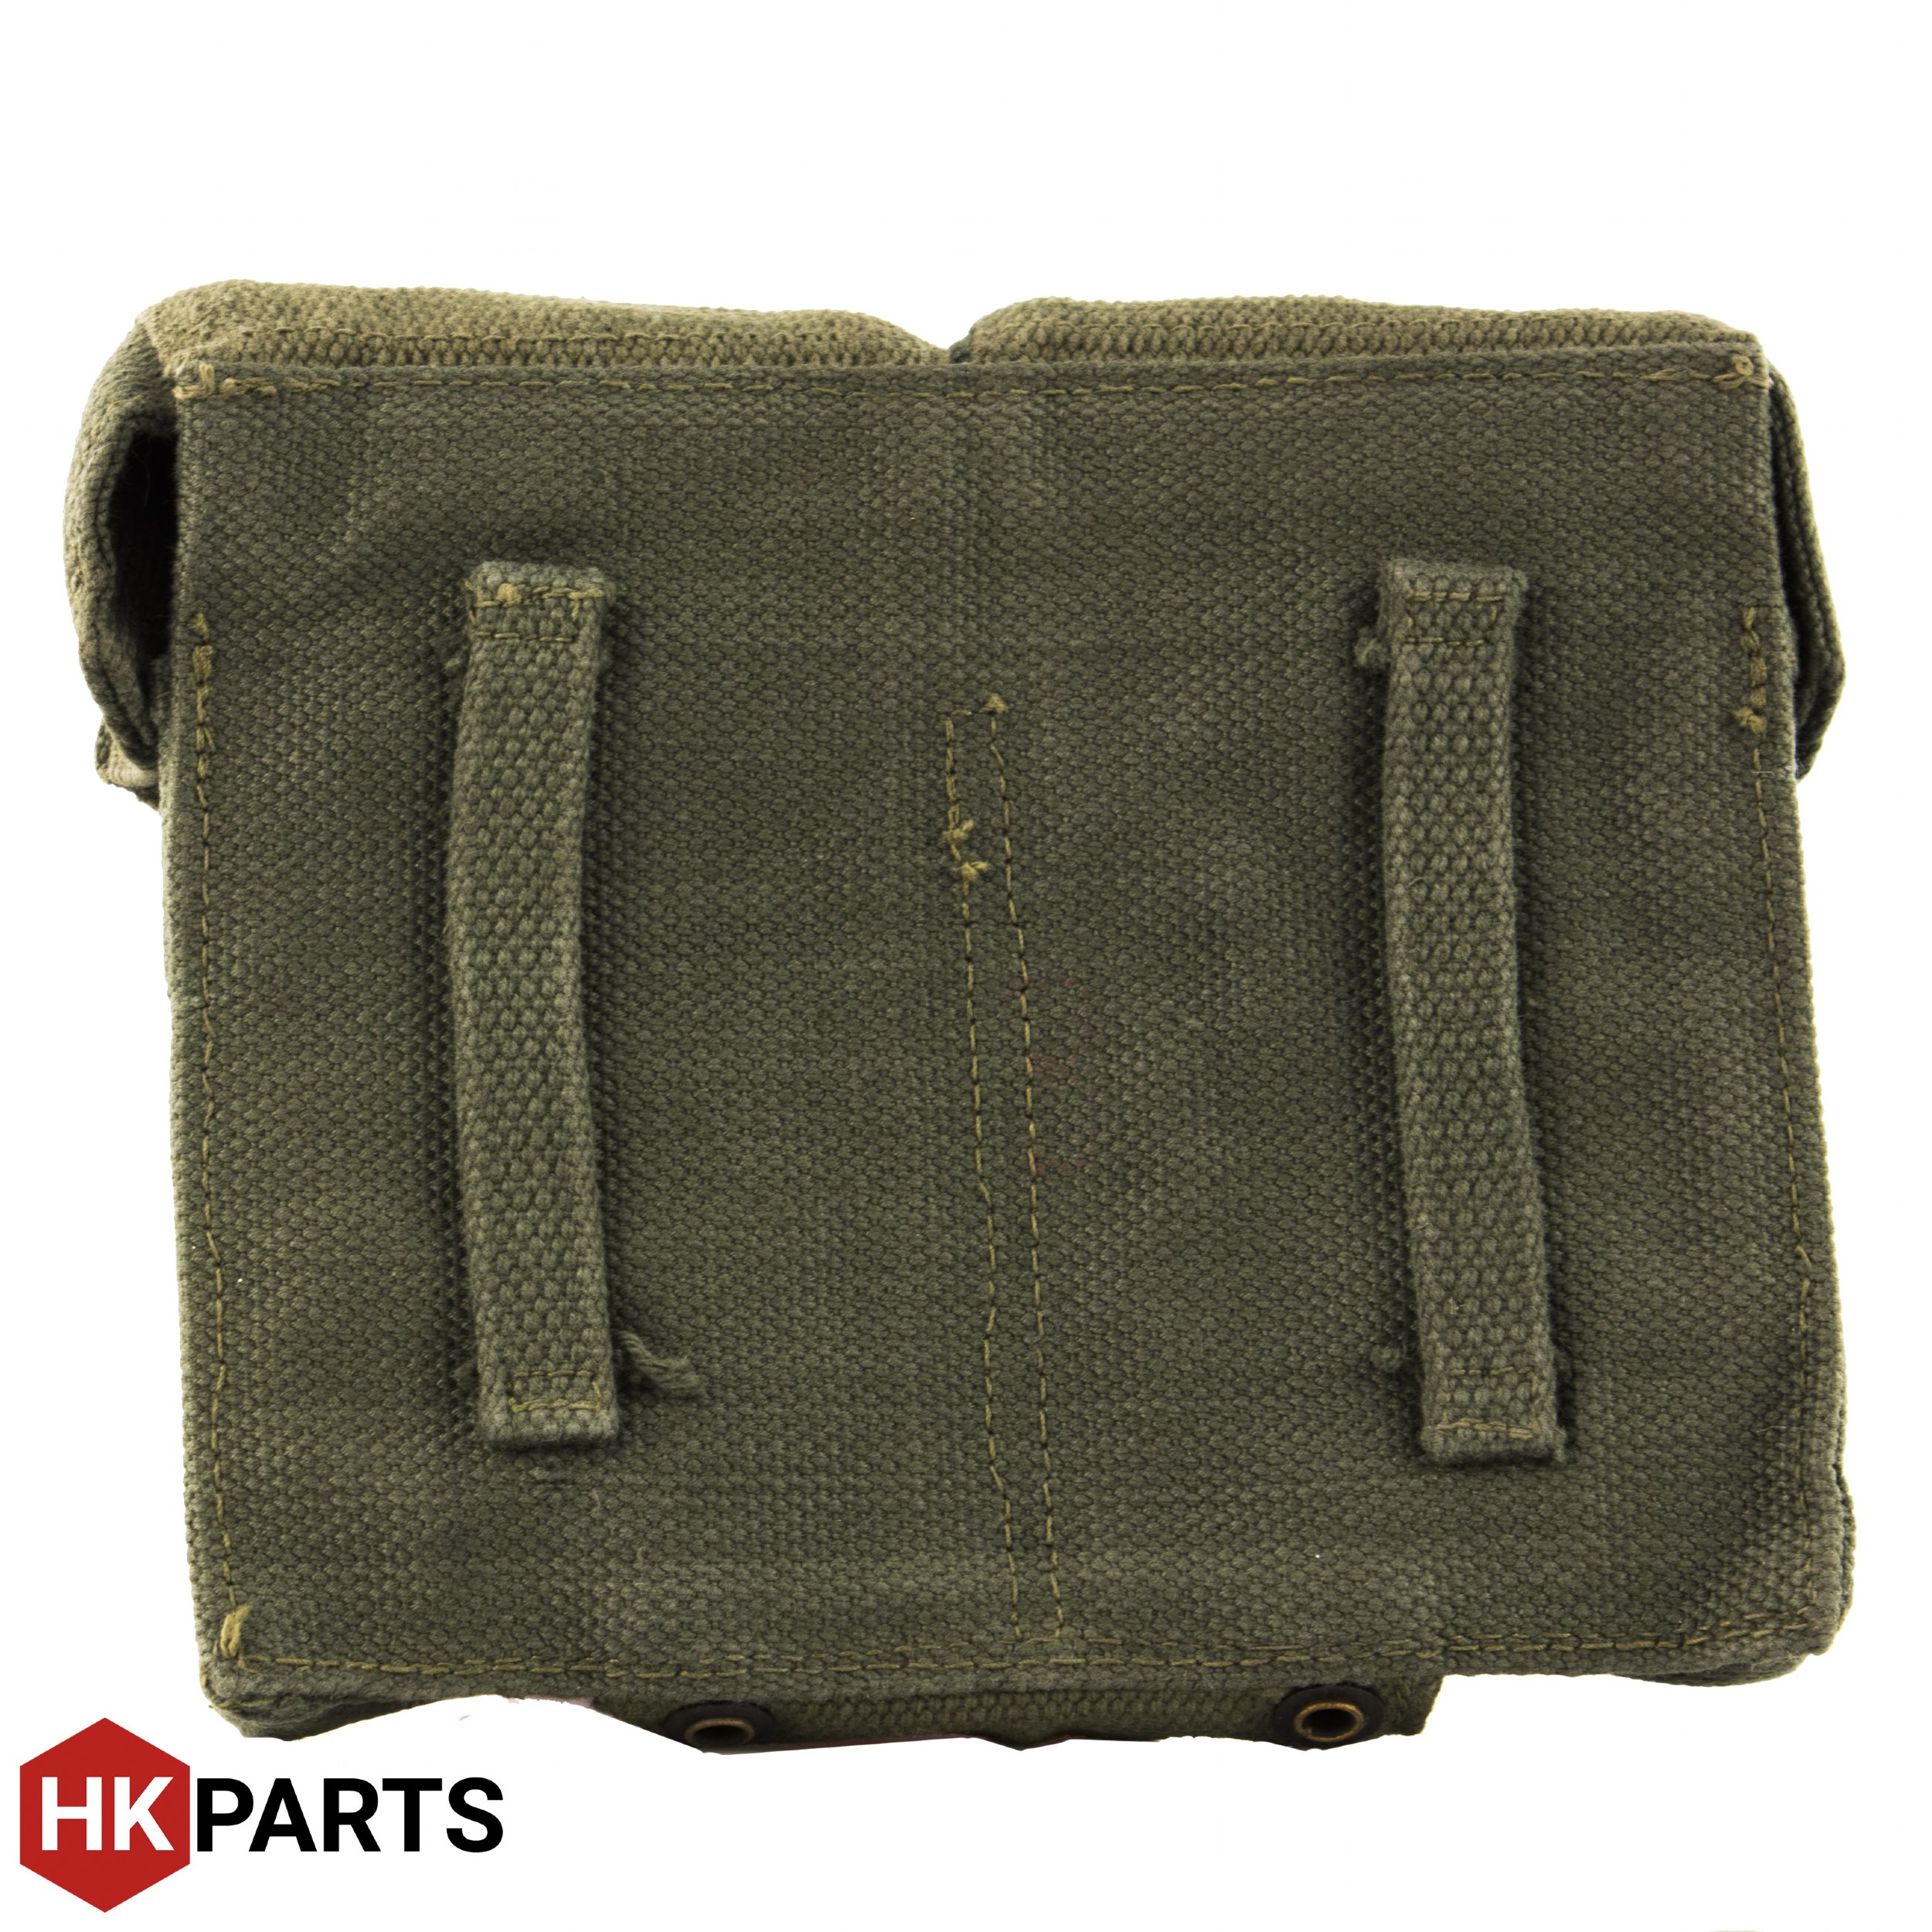 2 X 20 Round Mags With New Cloth Mag Pouch